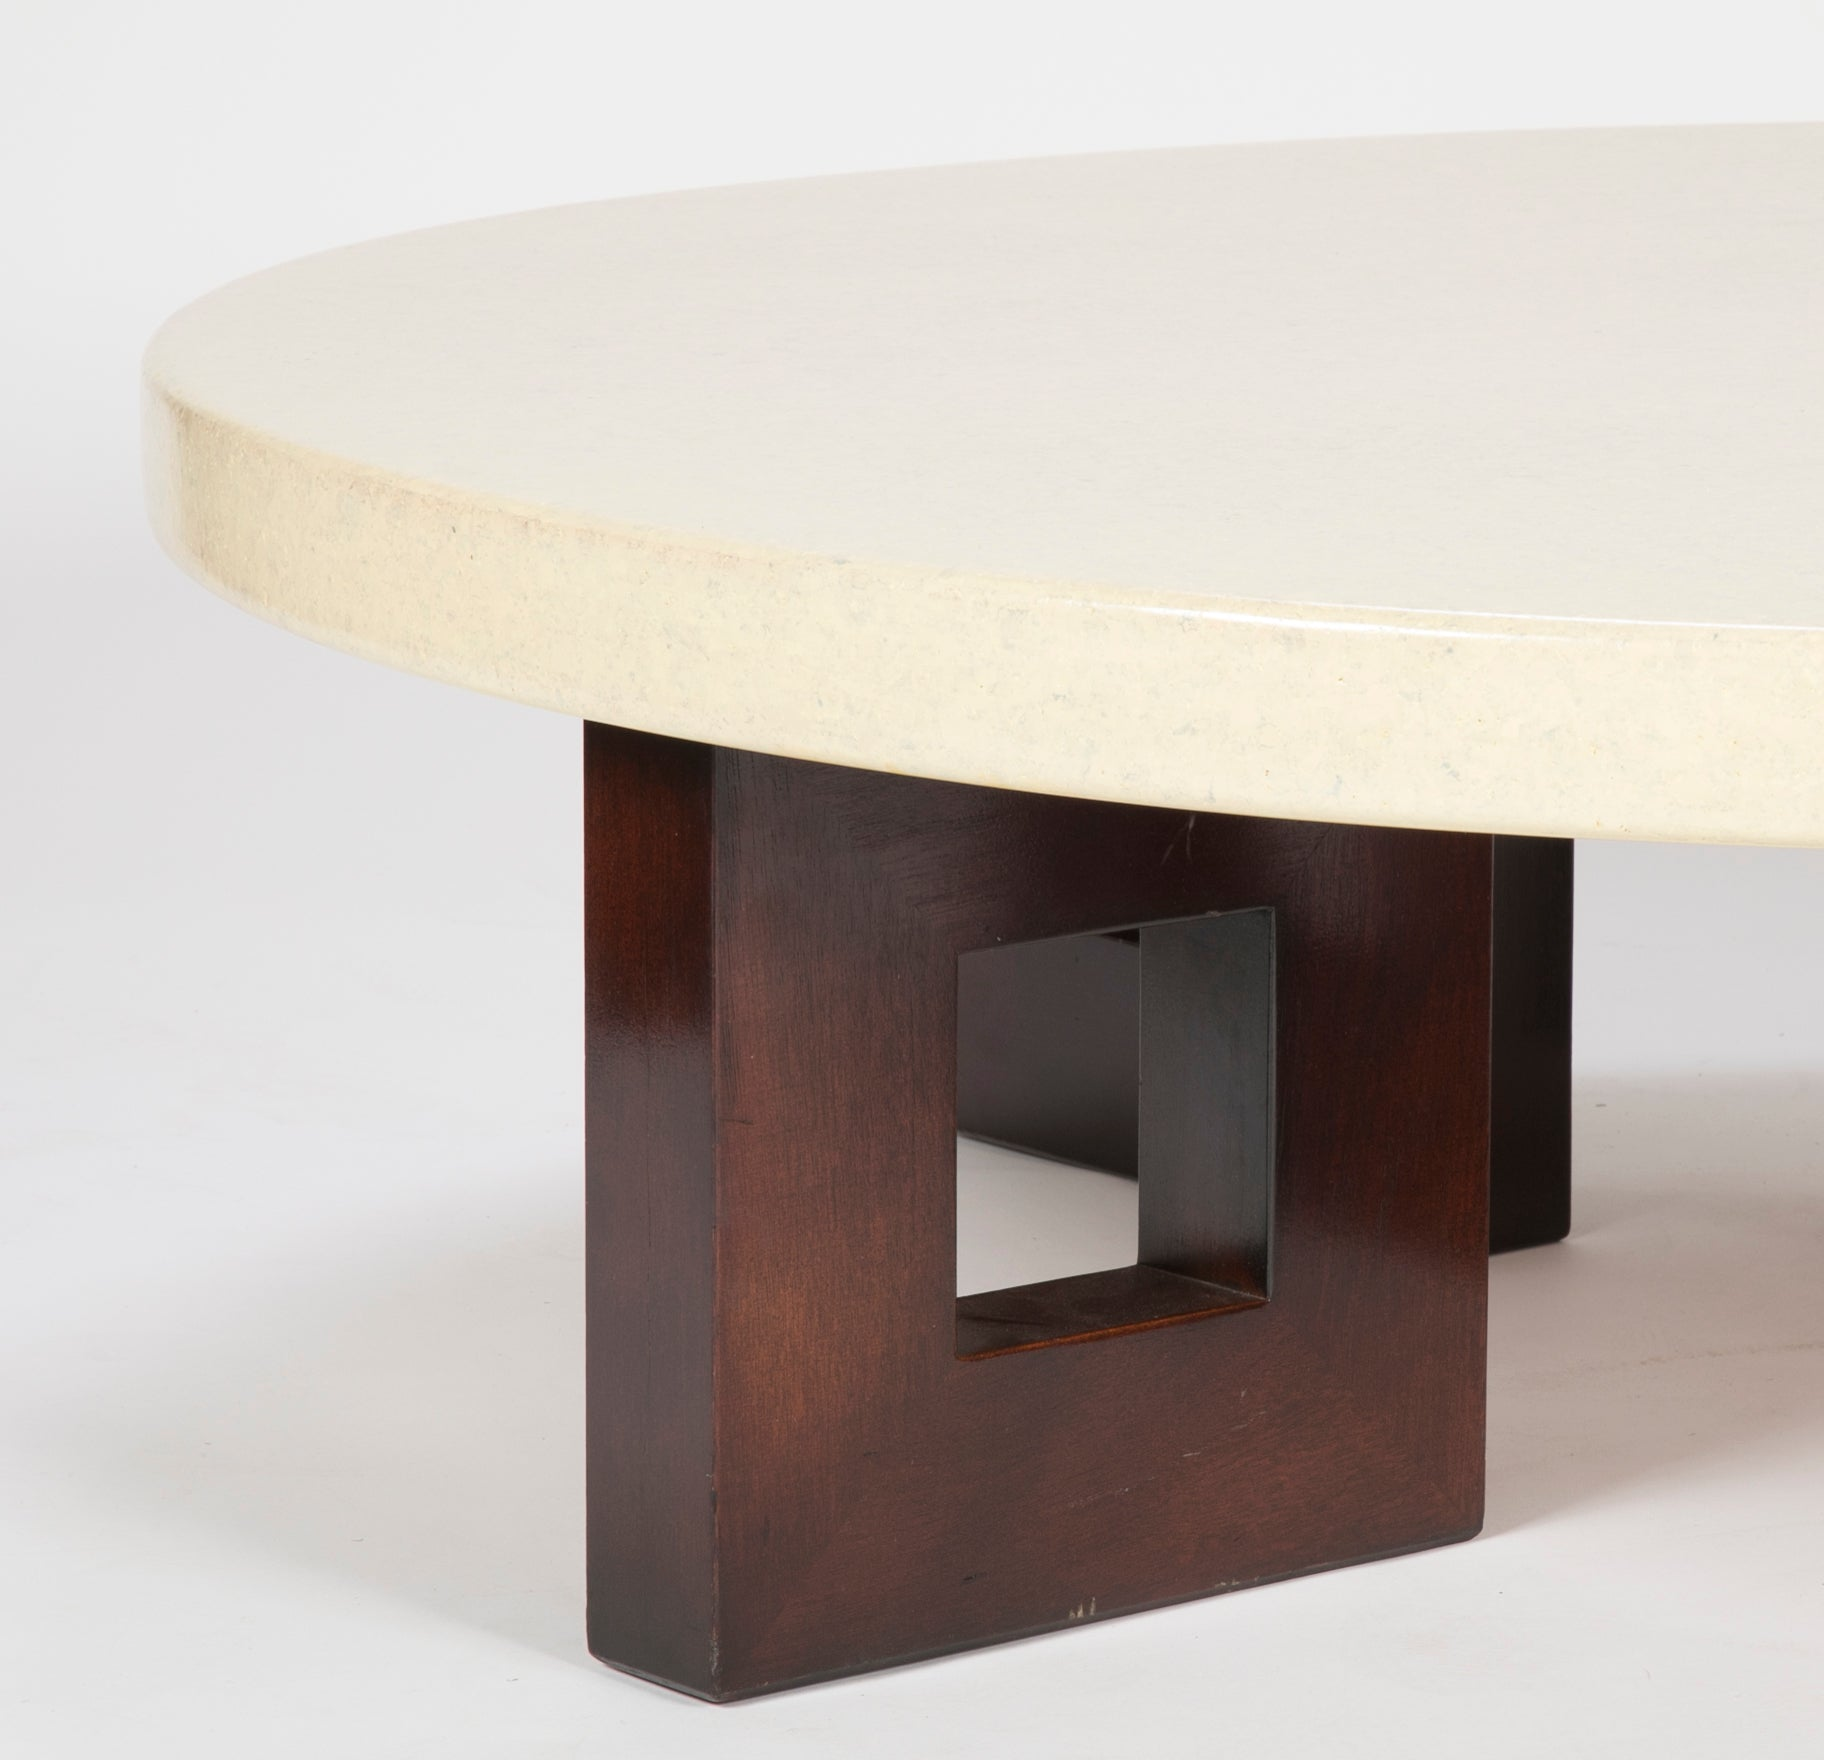 Circular Cork Coffee Table Designed by Paul Frankl for Johnson Furniture Co